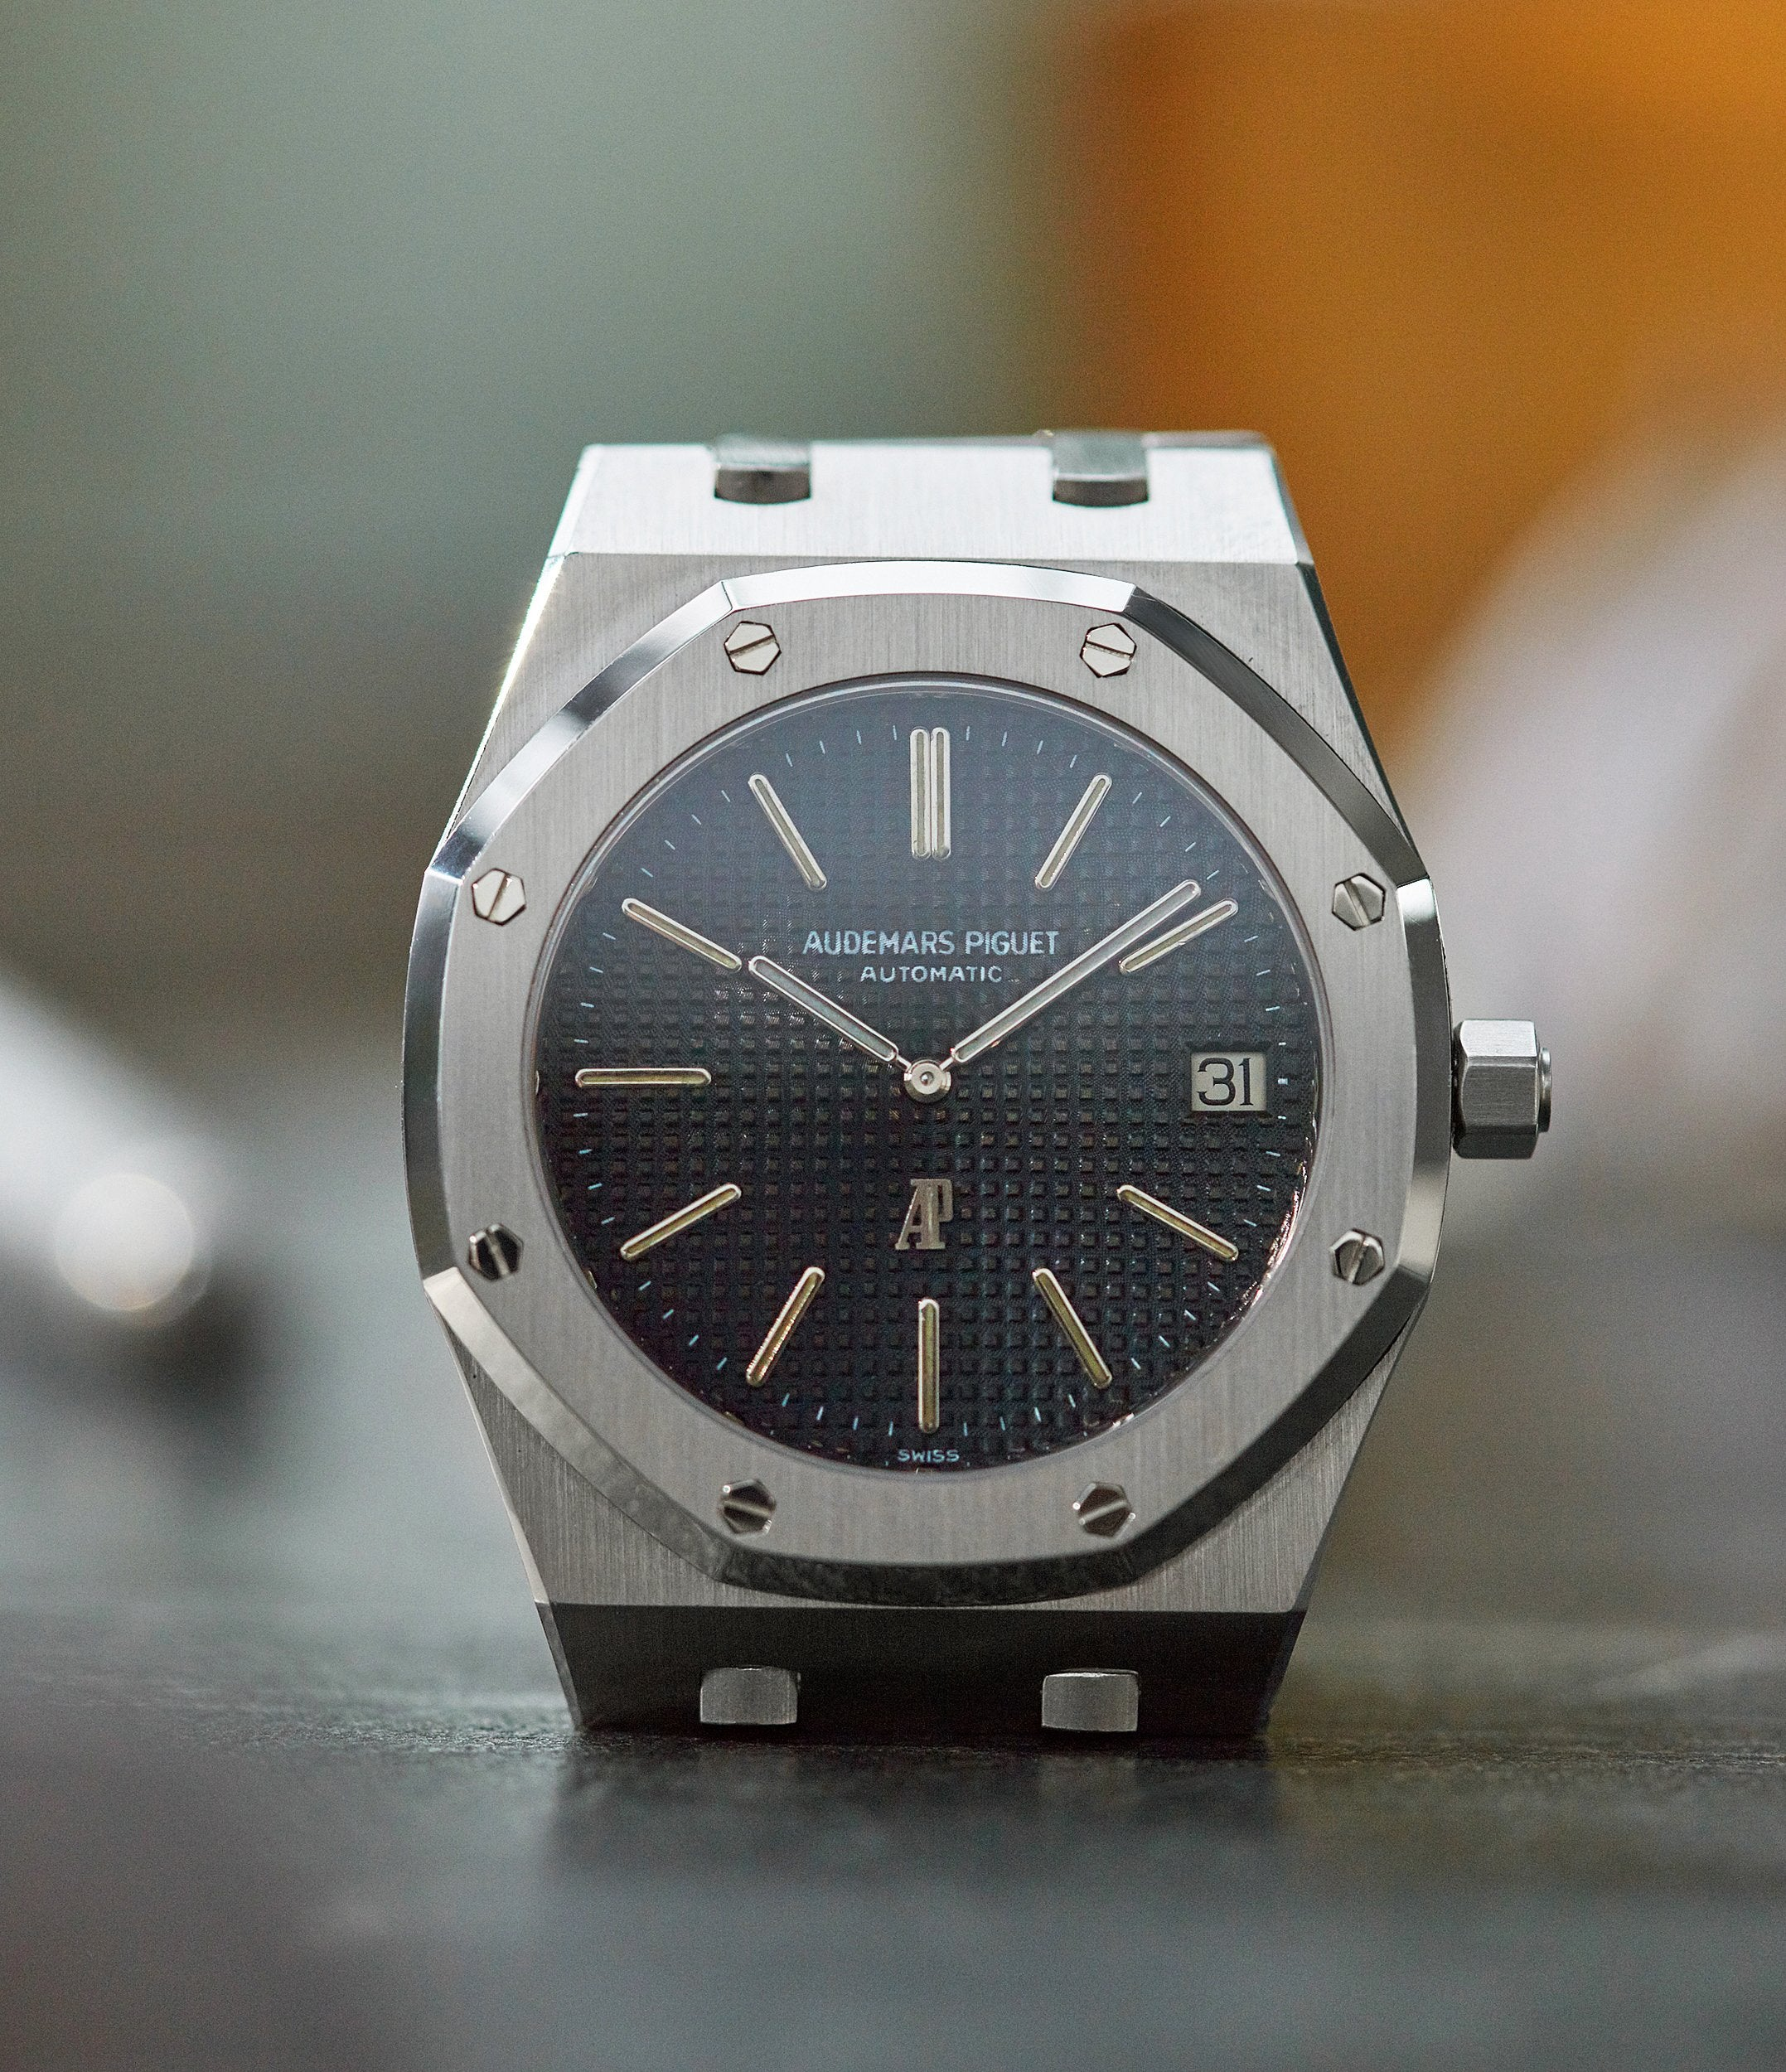 shop pre-owned Audemars Piguet Royal Oak early A-series steel 5402A steel sports luxury watch for sale online A Collected Man London UK specialist rare watches